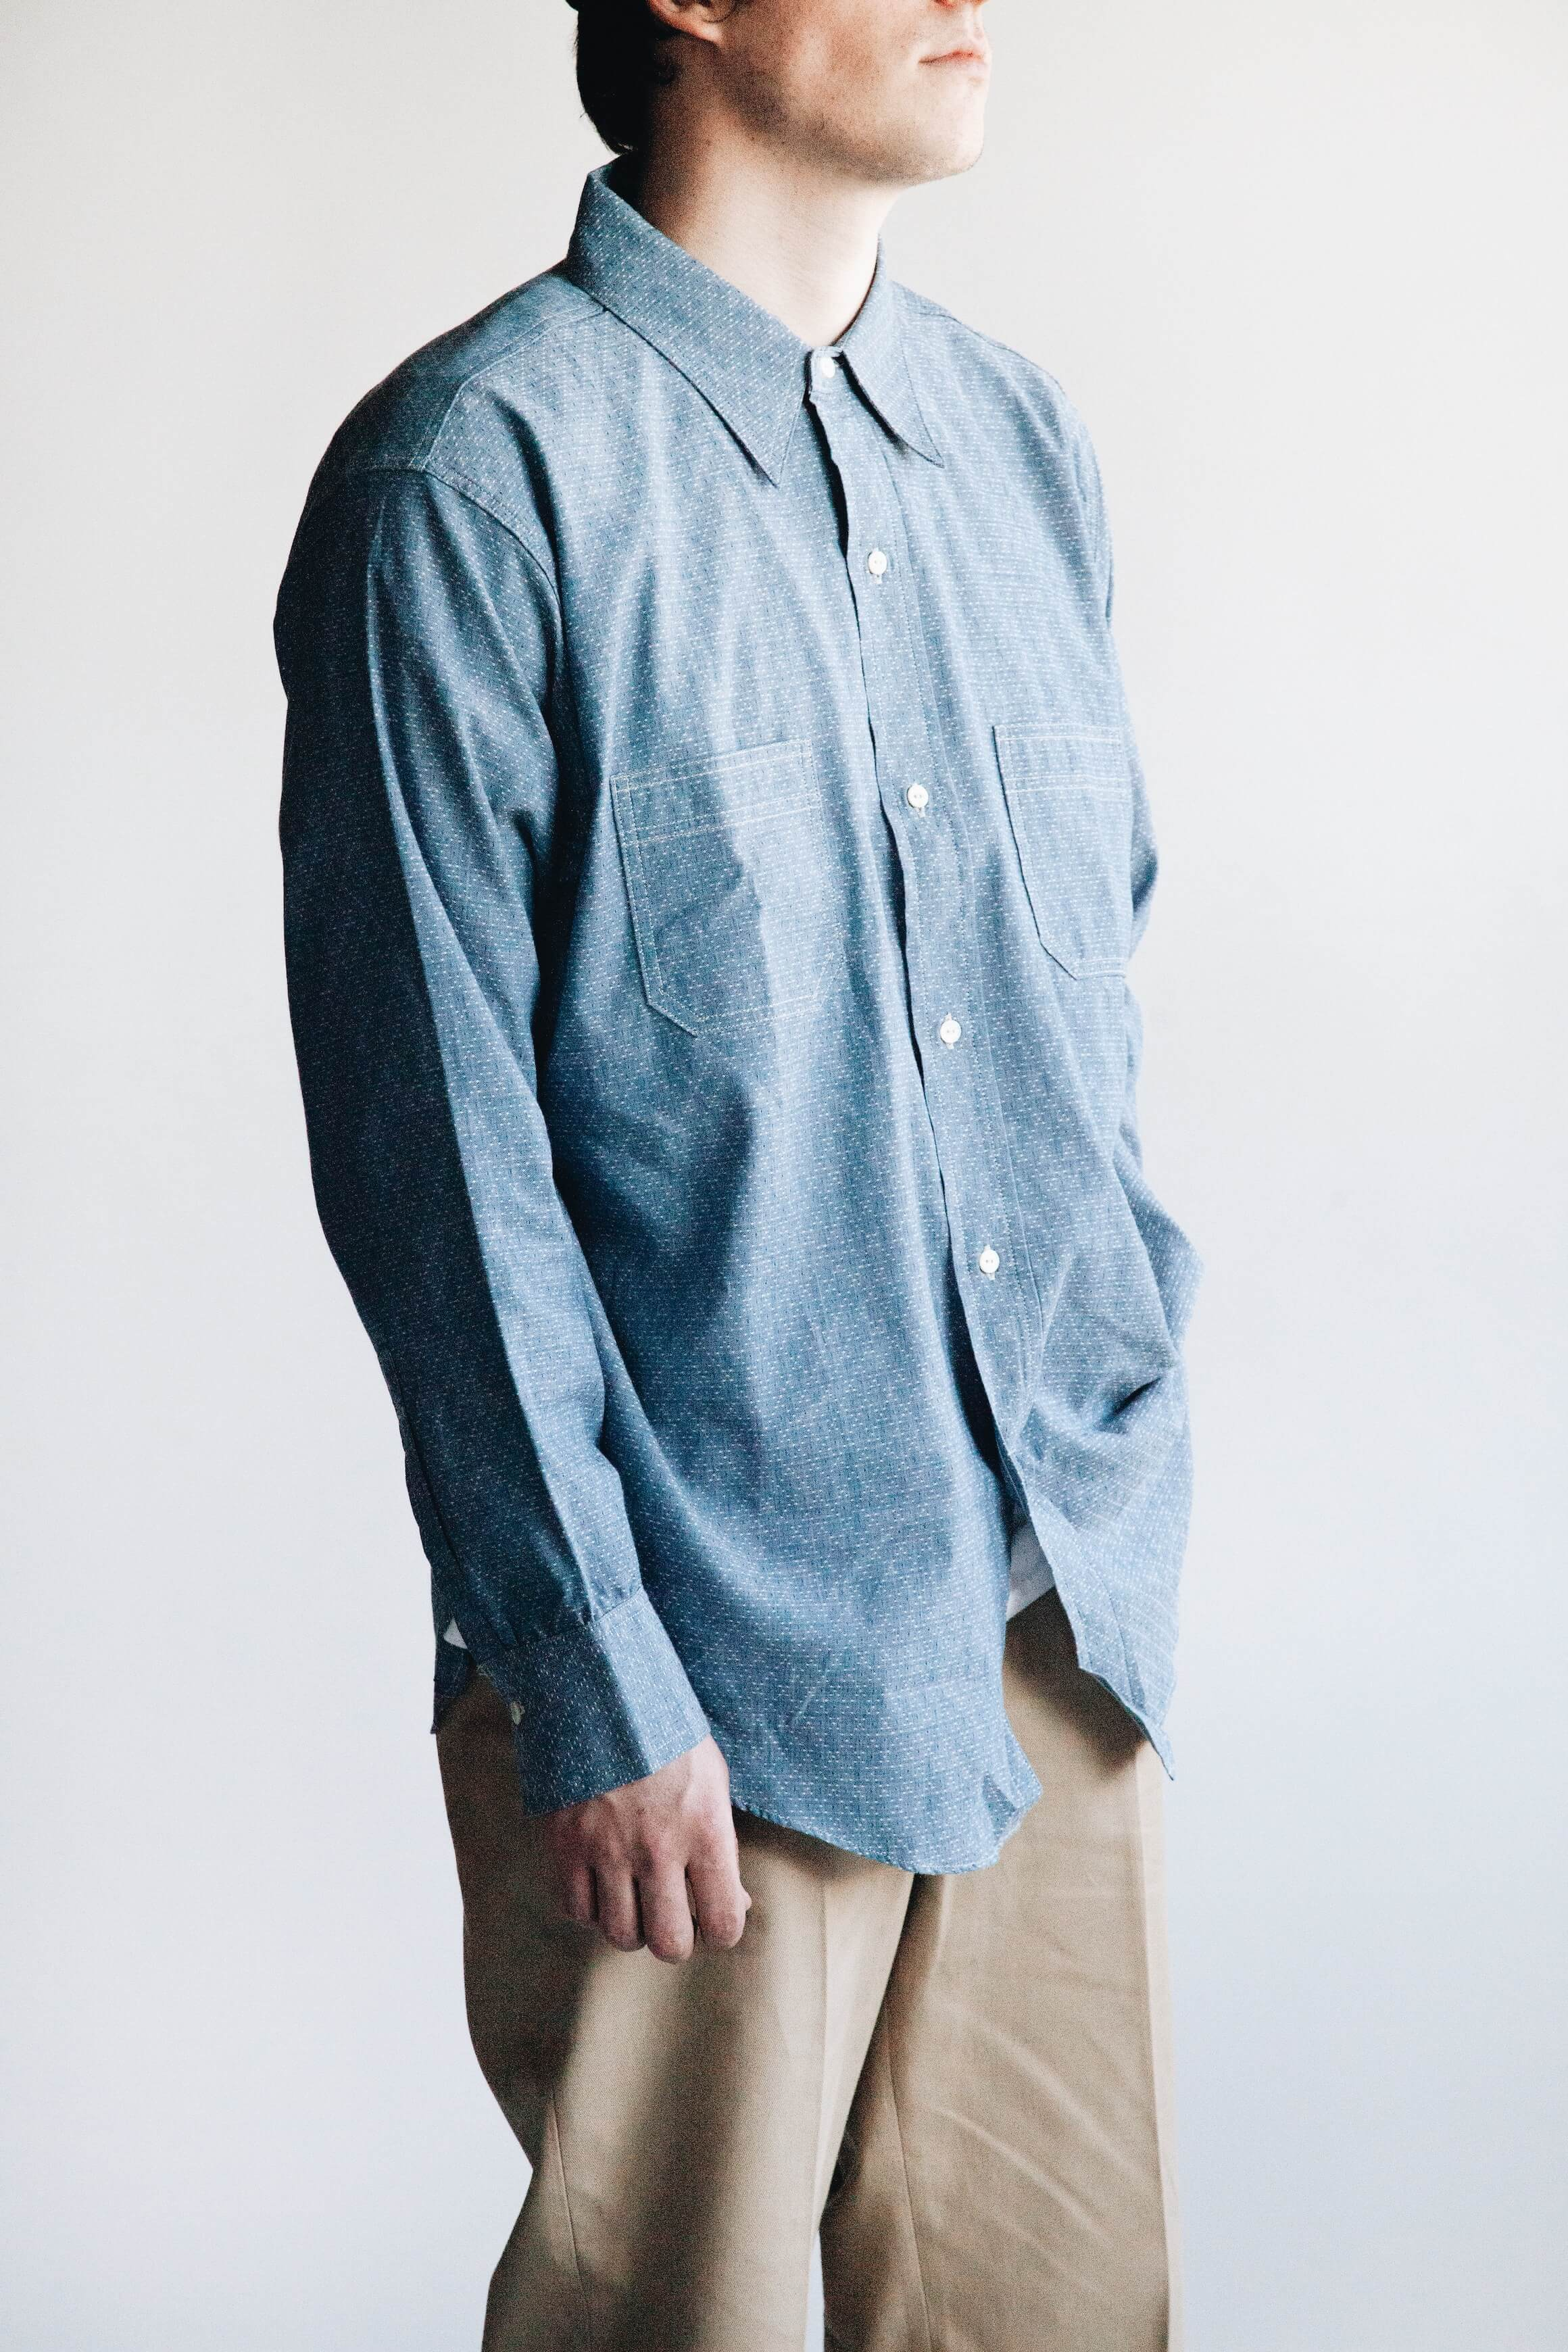 big yank 41 a shirts dd chambray shirt, big yank 1963 chino pants on body